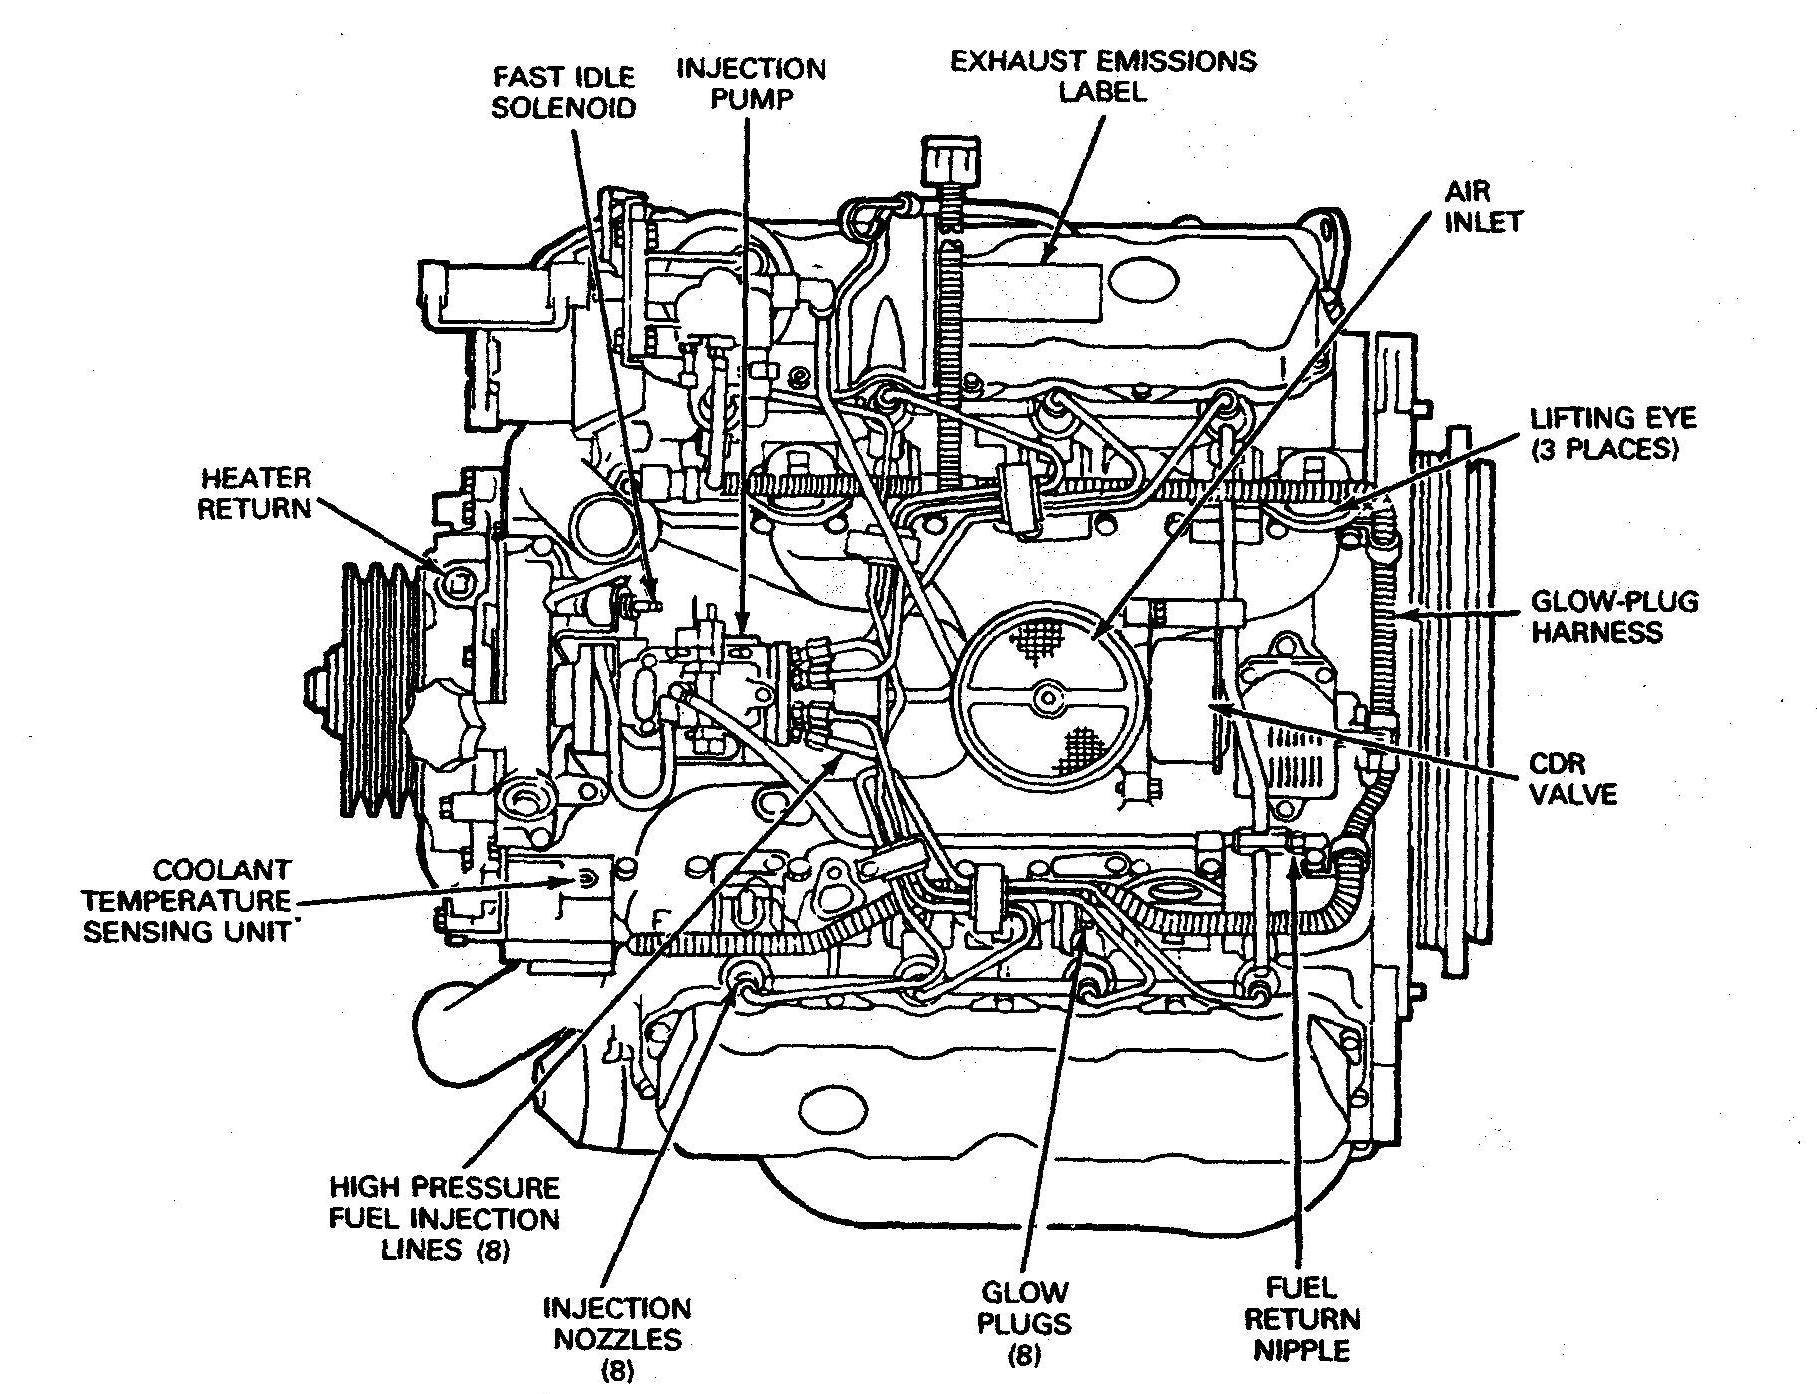 2000 Eclipse Cooling Diagram Ford V6 3 7 Engine Diagram At Ww w